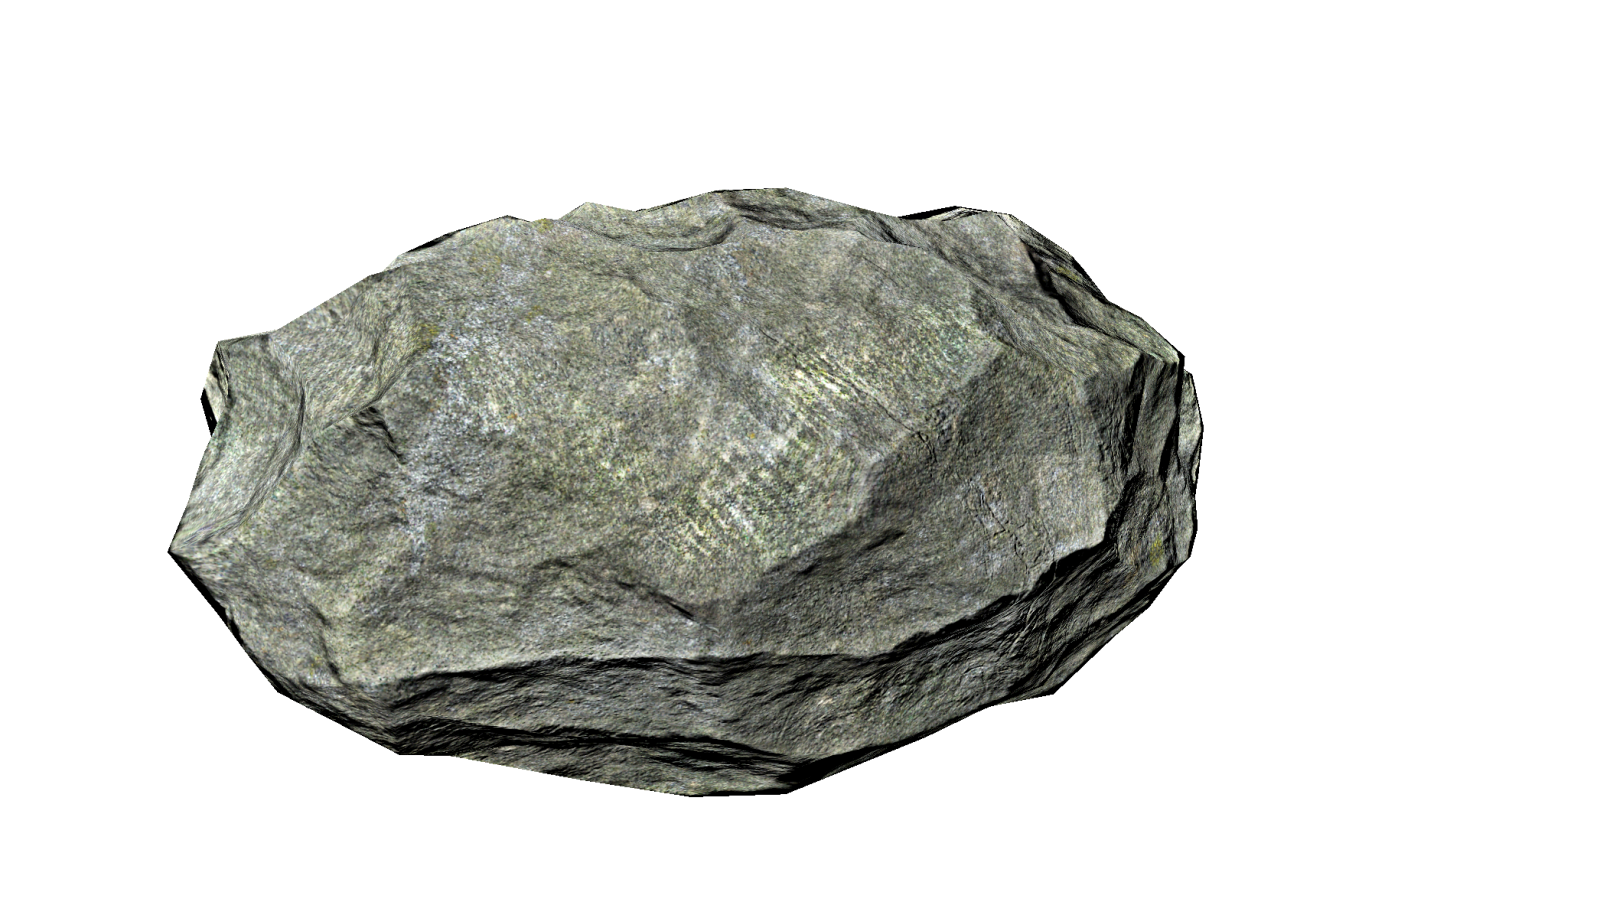 rock png - Google Search - Rock PNG